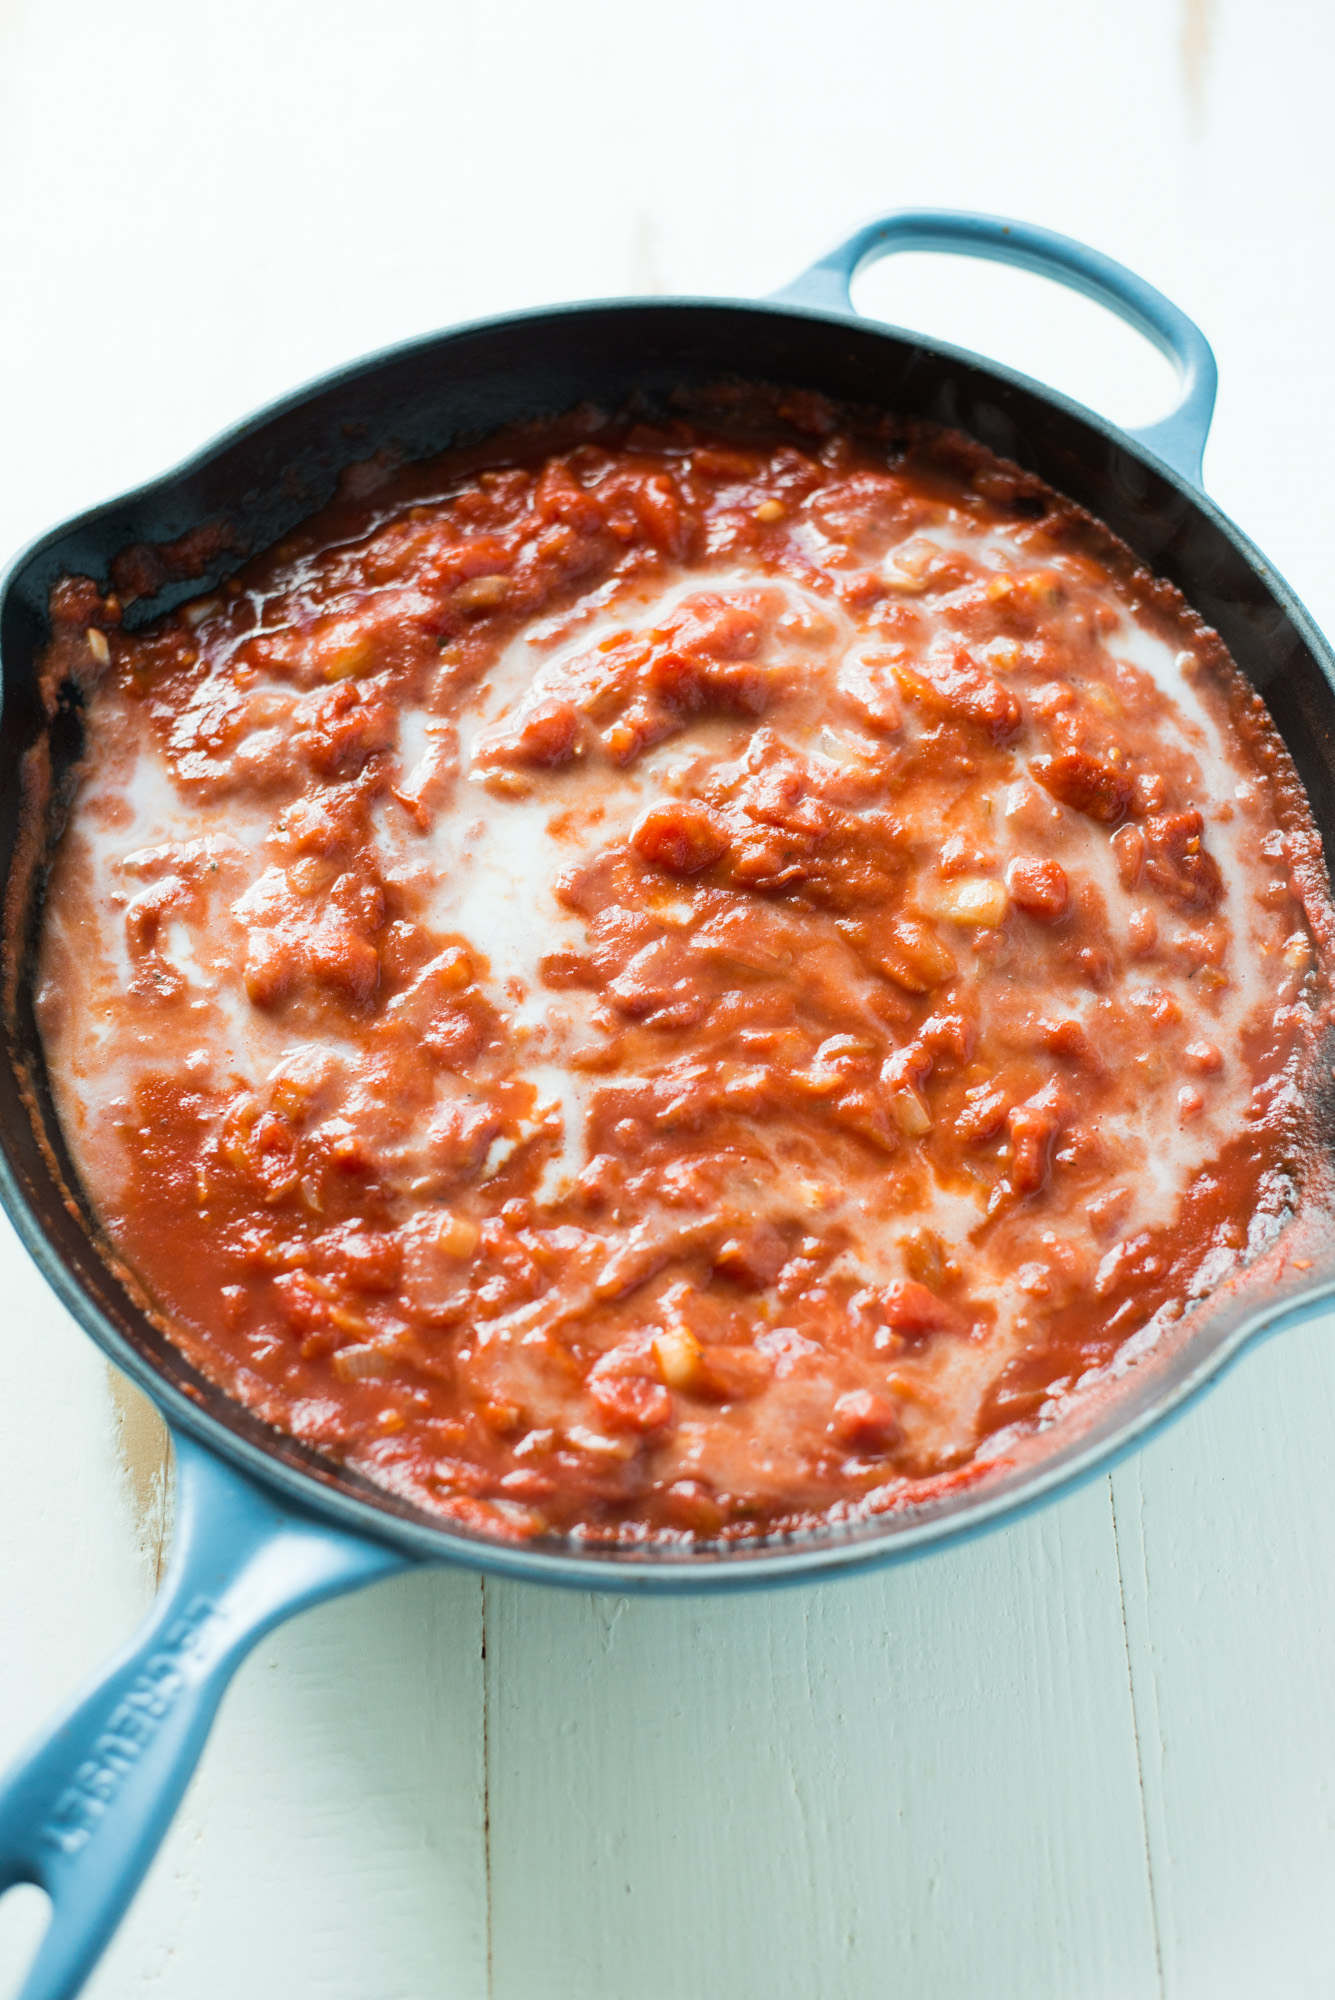 Simple pantry ingredients come together in this creamy, dreamy 20-Minute Tomato Cream Sauce. Gluten-free, dairy-free, crazy easy, and completely divine!